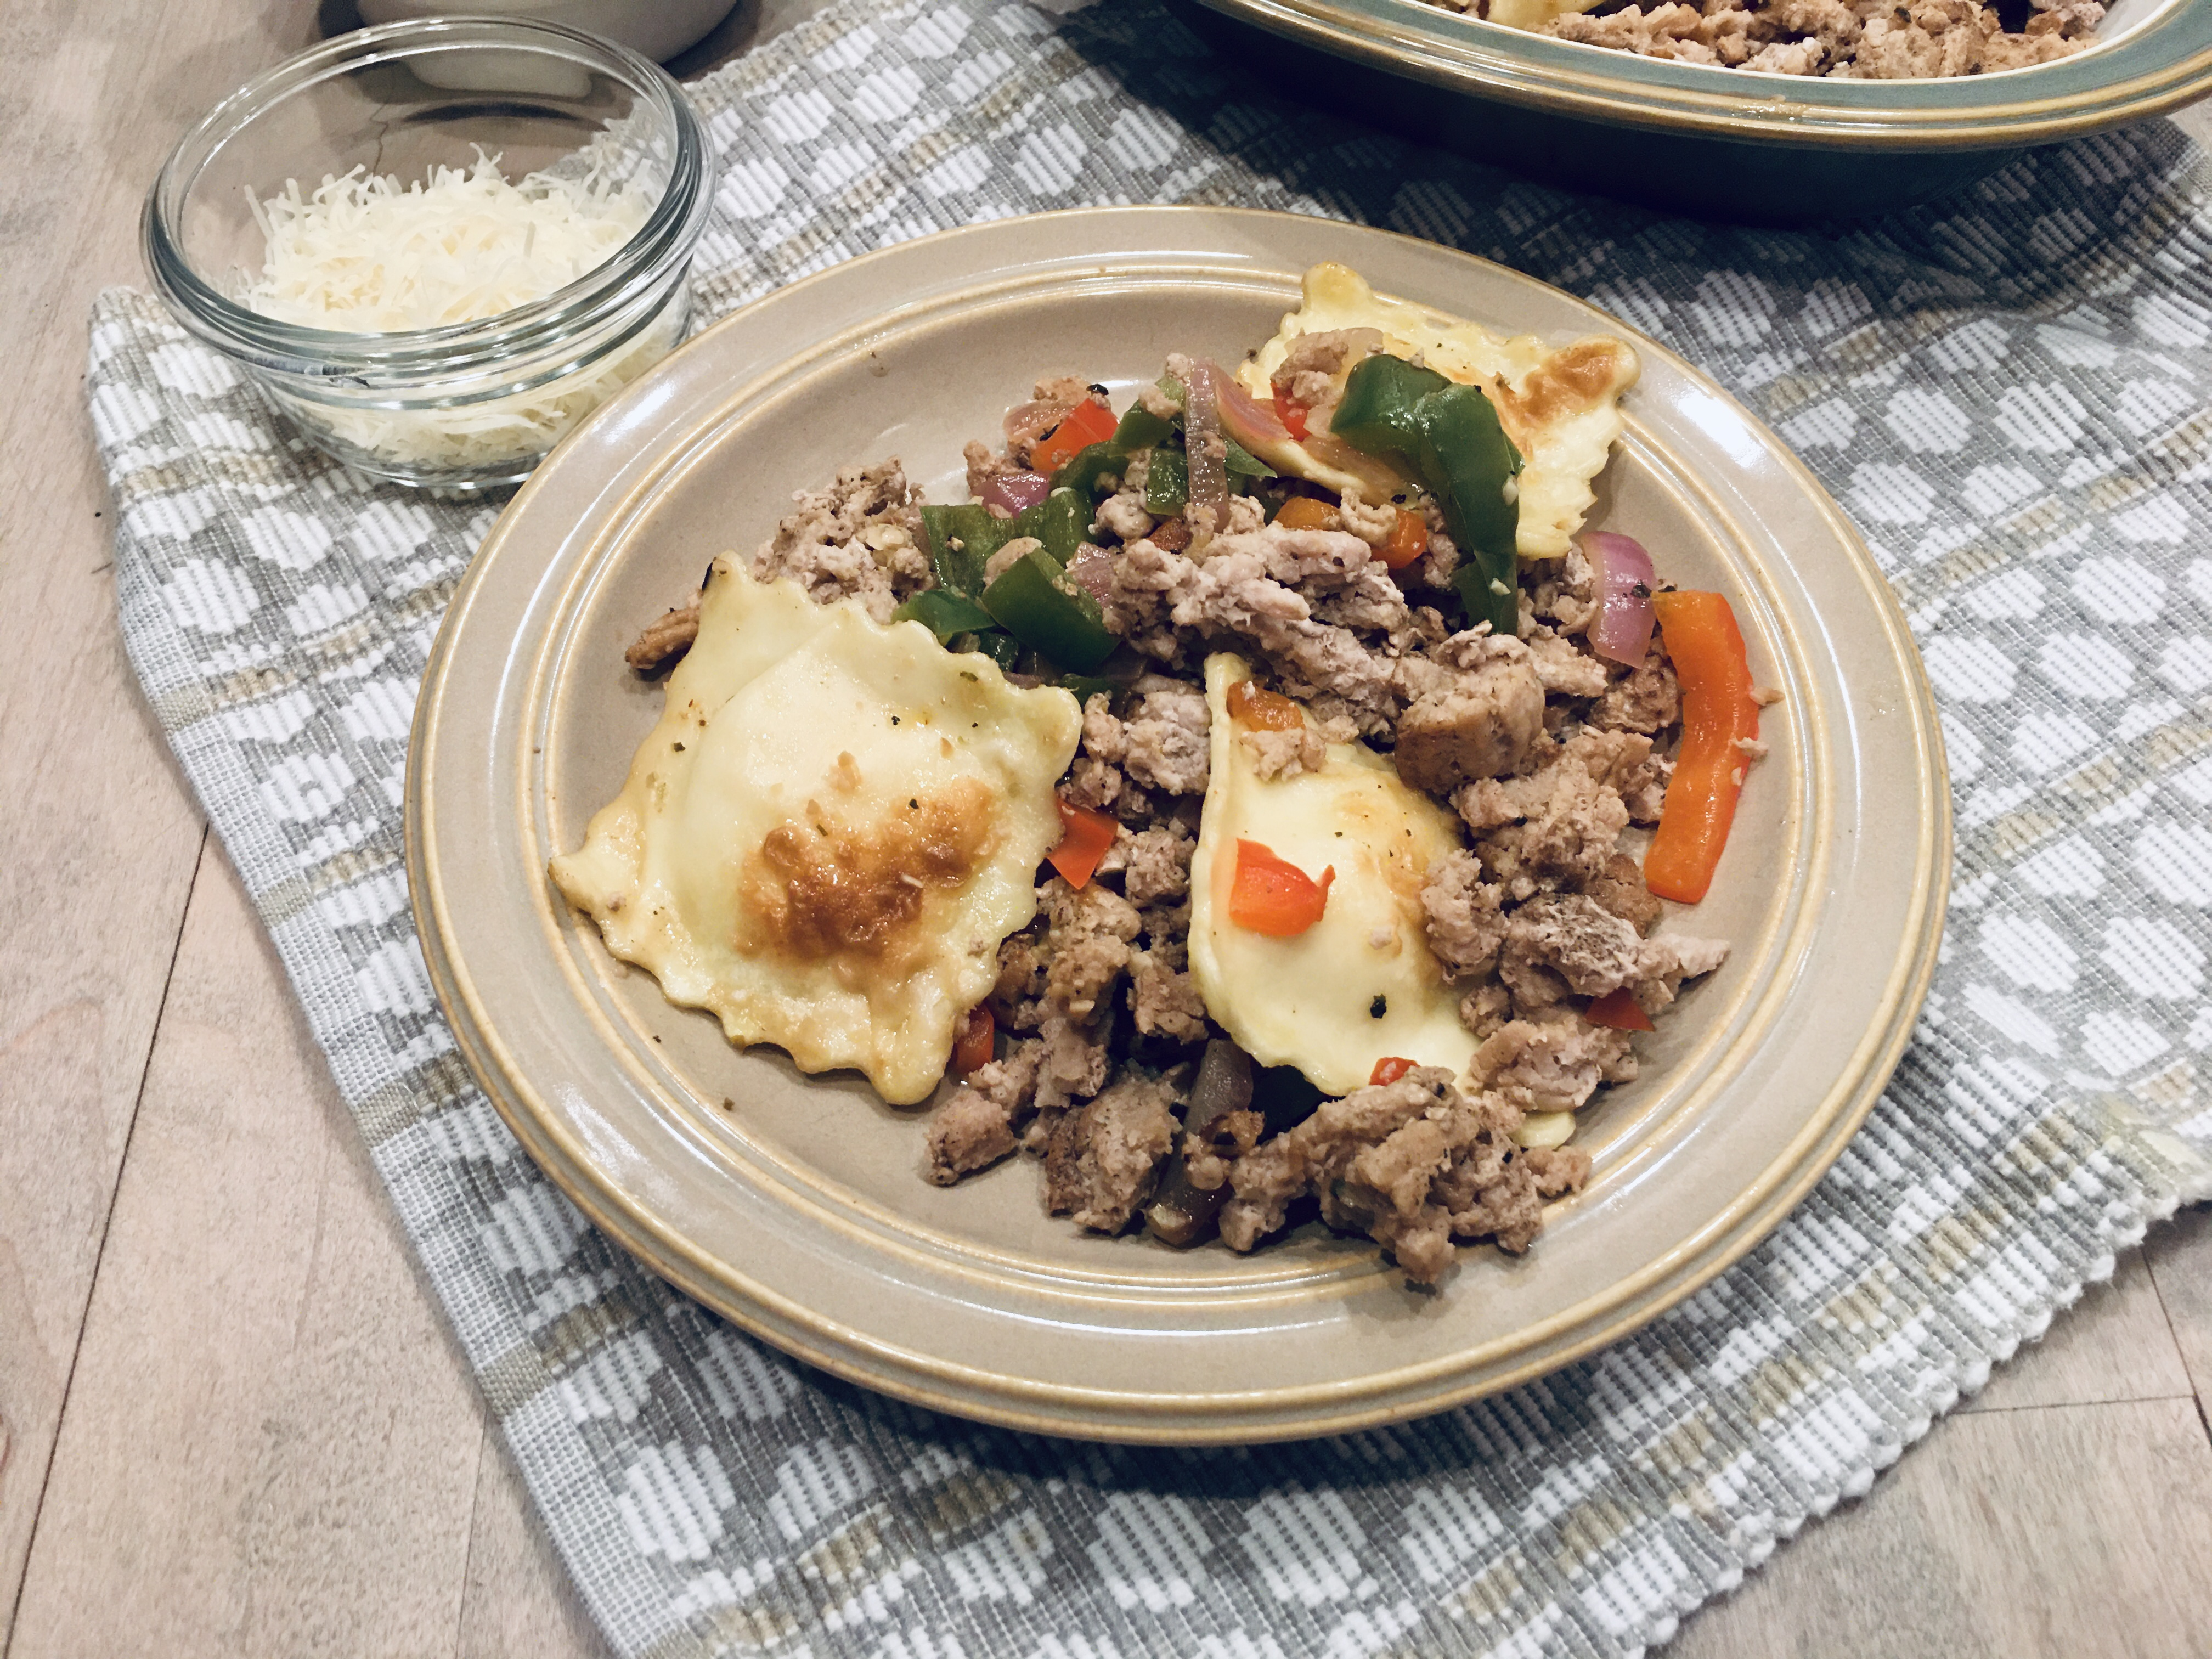 Ground Turkey & Cheese Ravioli Stir-fry